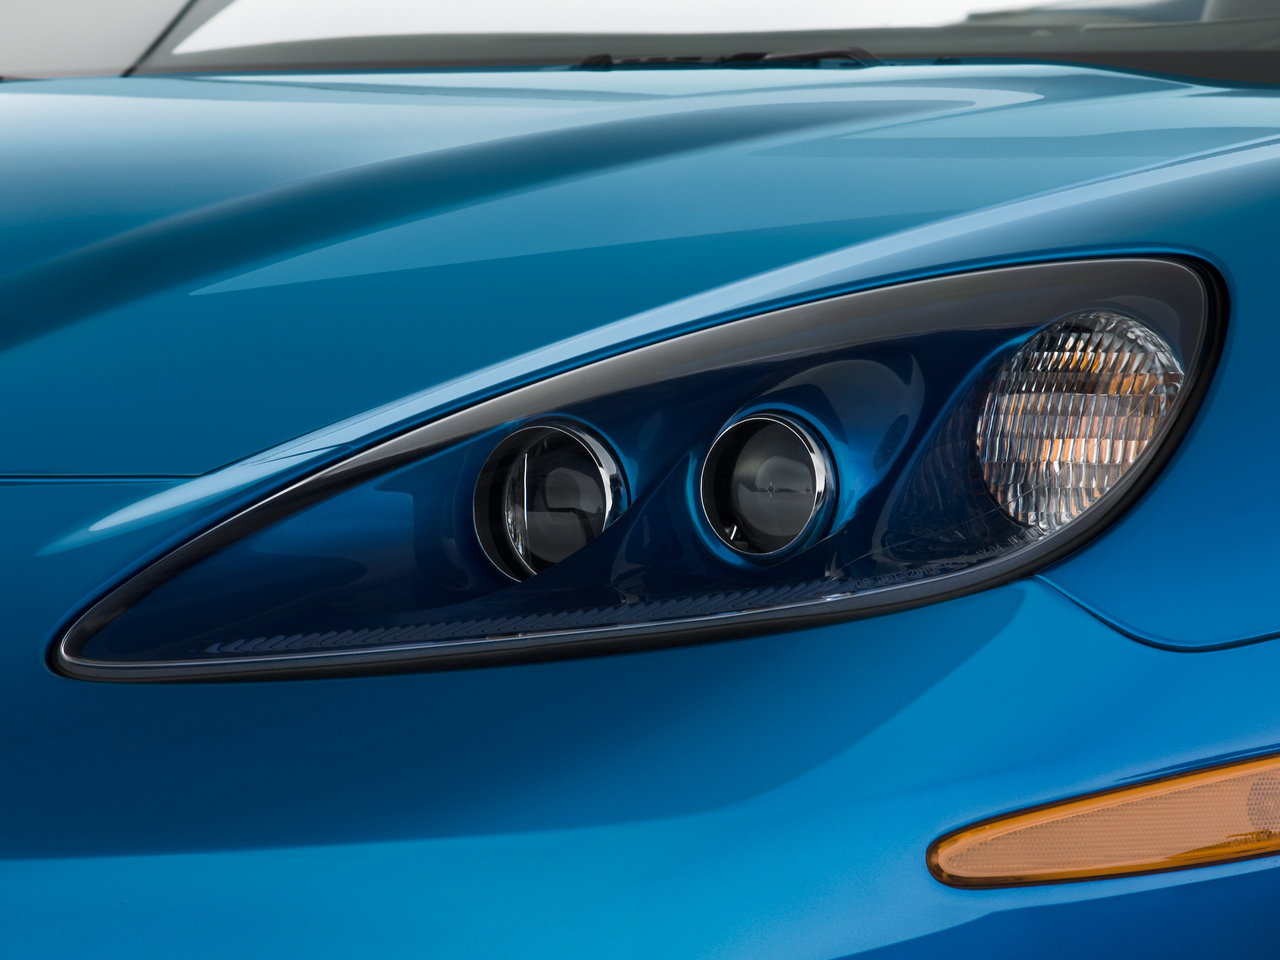 2008 Chevrolet Corvette, 430 hp LS3 6 2L V8 Engine Details  Latest News, Features, and Future